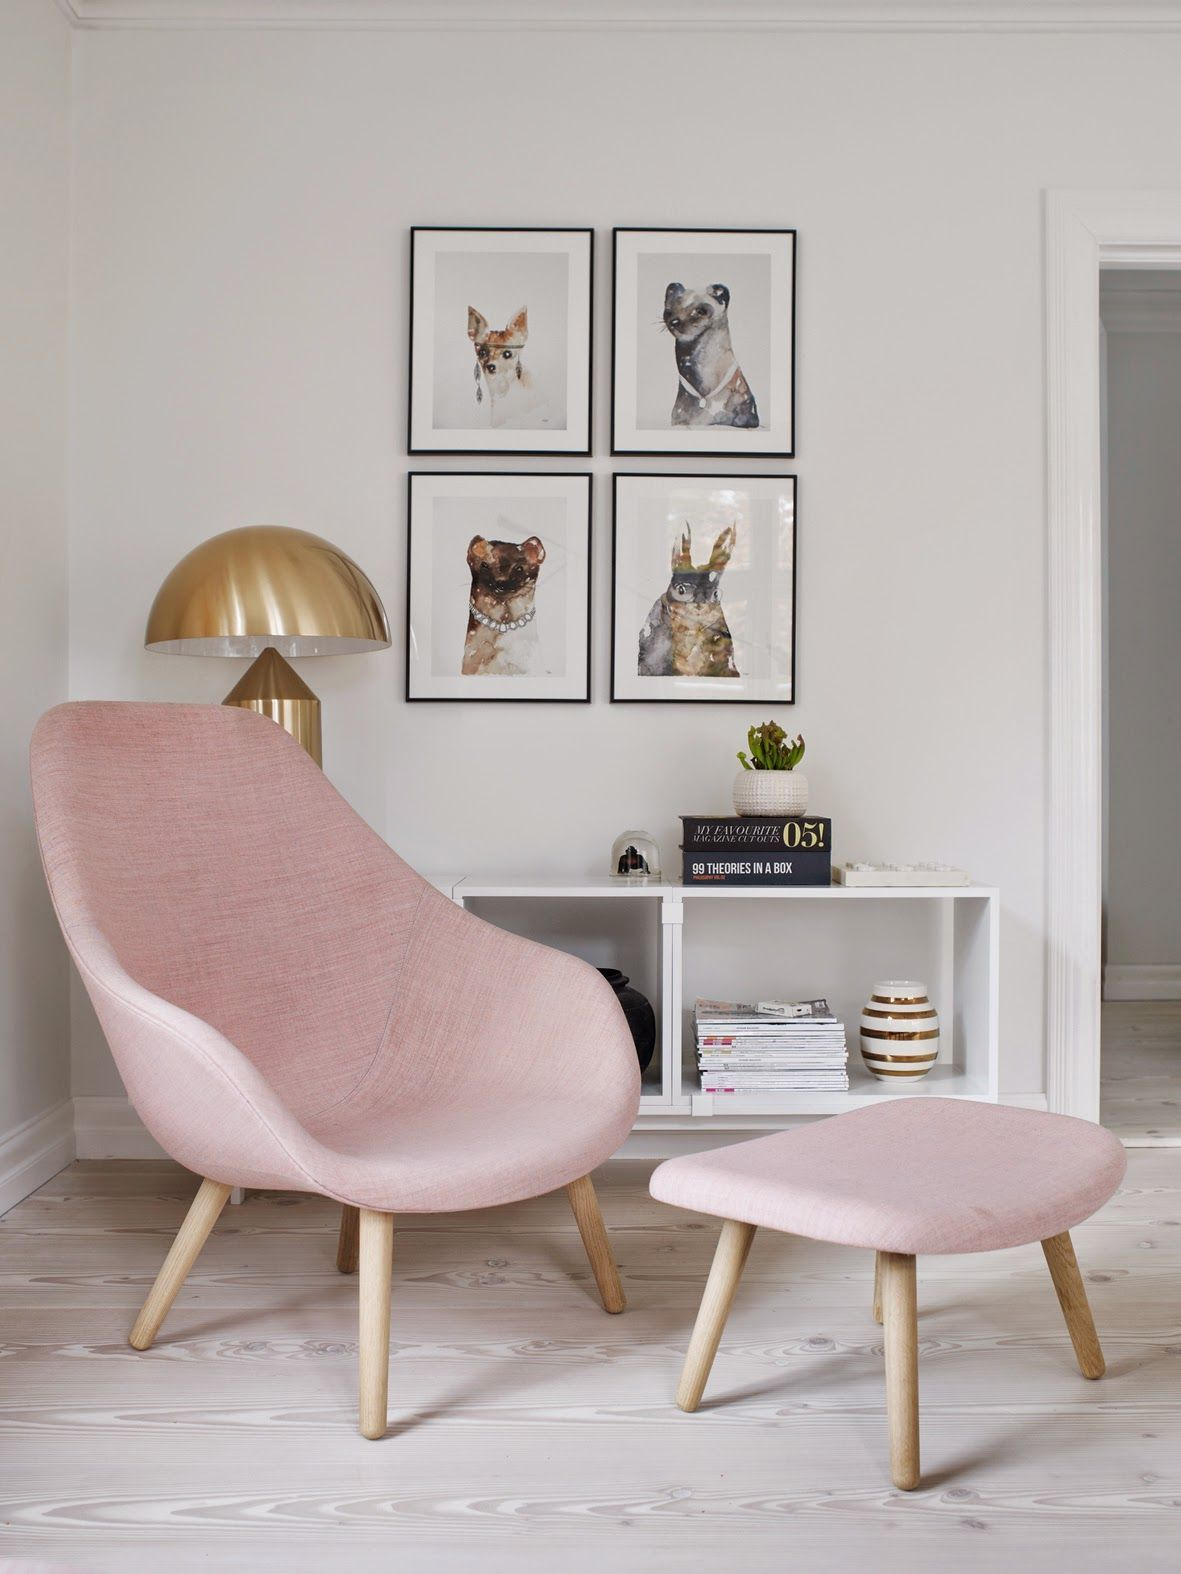 Sessel Le Vieux Pin By Unique Chair On Pink Chair Home Decor Retro Home